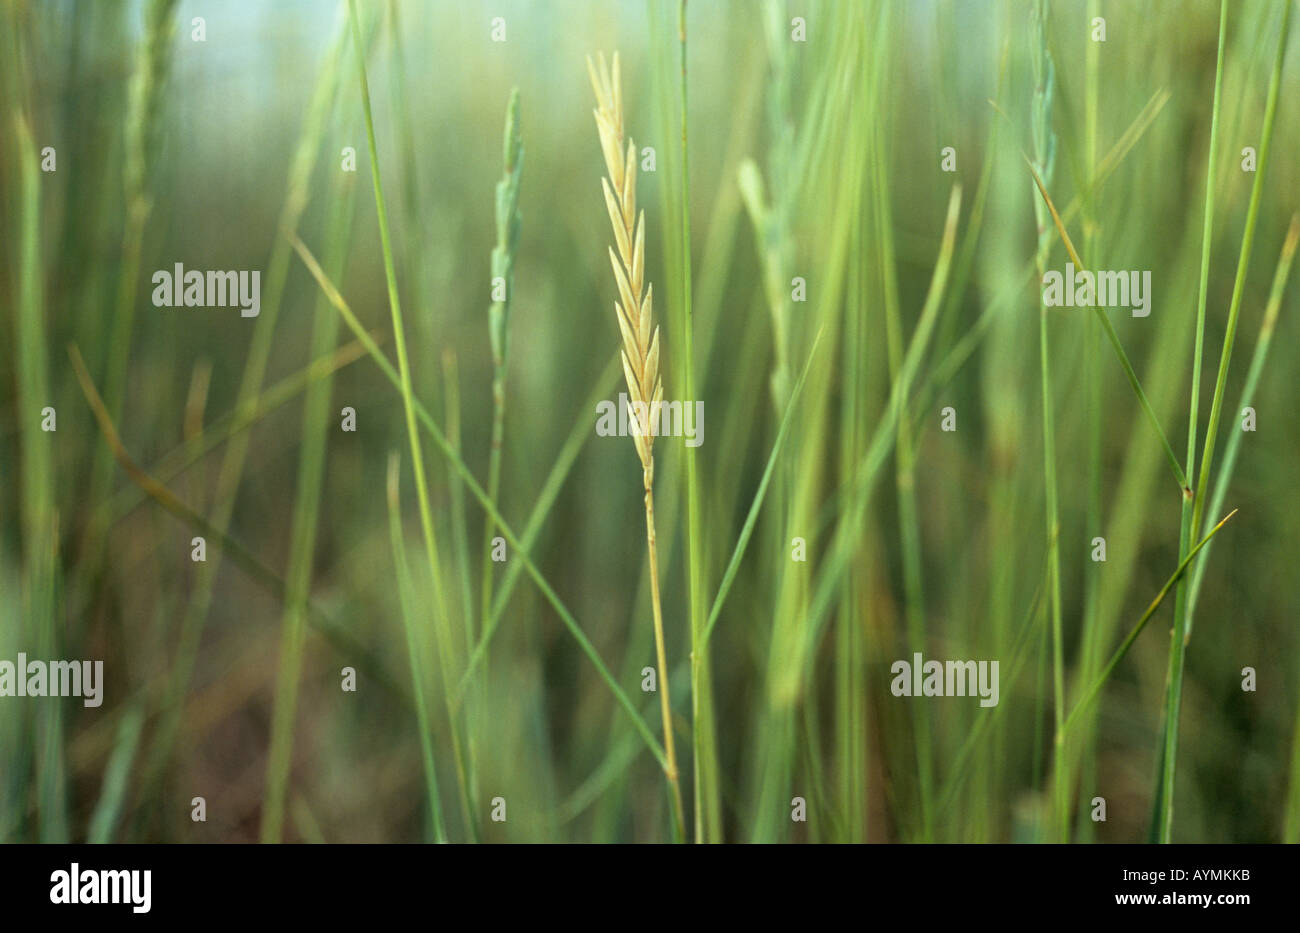 Grass Couch Close Up Of Blue Green Stems And Seedheads Of Sea Couch Grass Or